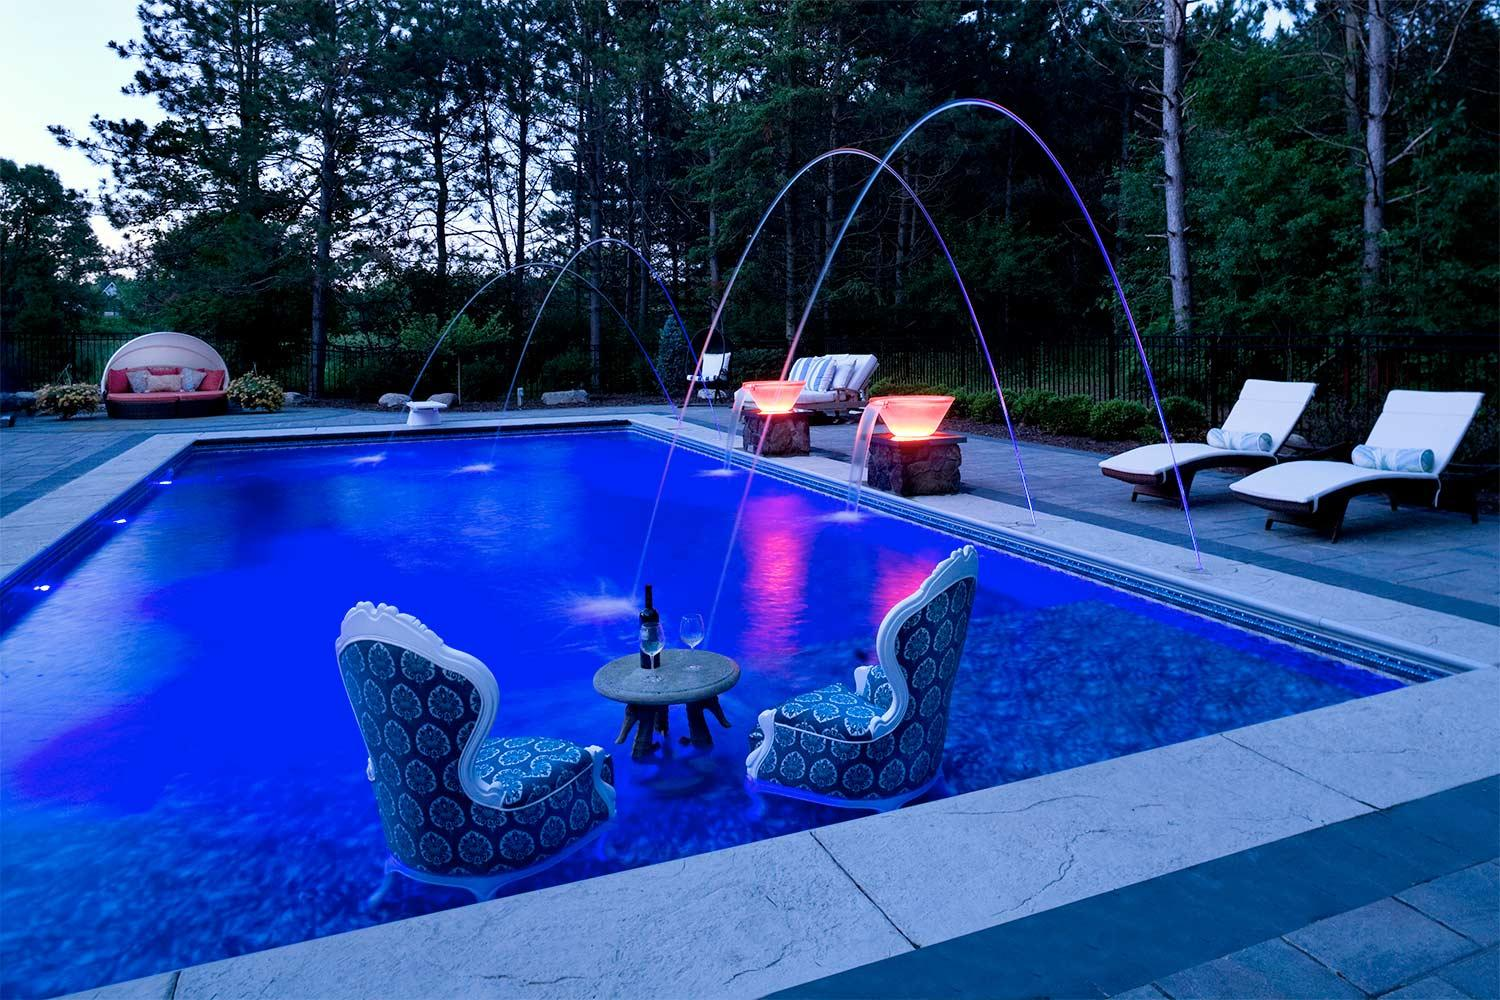 Unique backyard swimming pool with waterproof chairs, dramatic lights, and laminar jets.